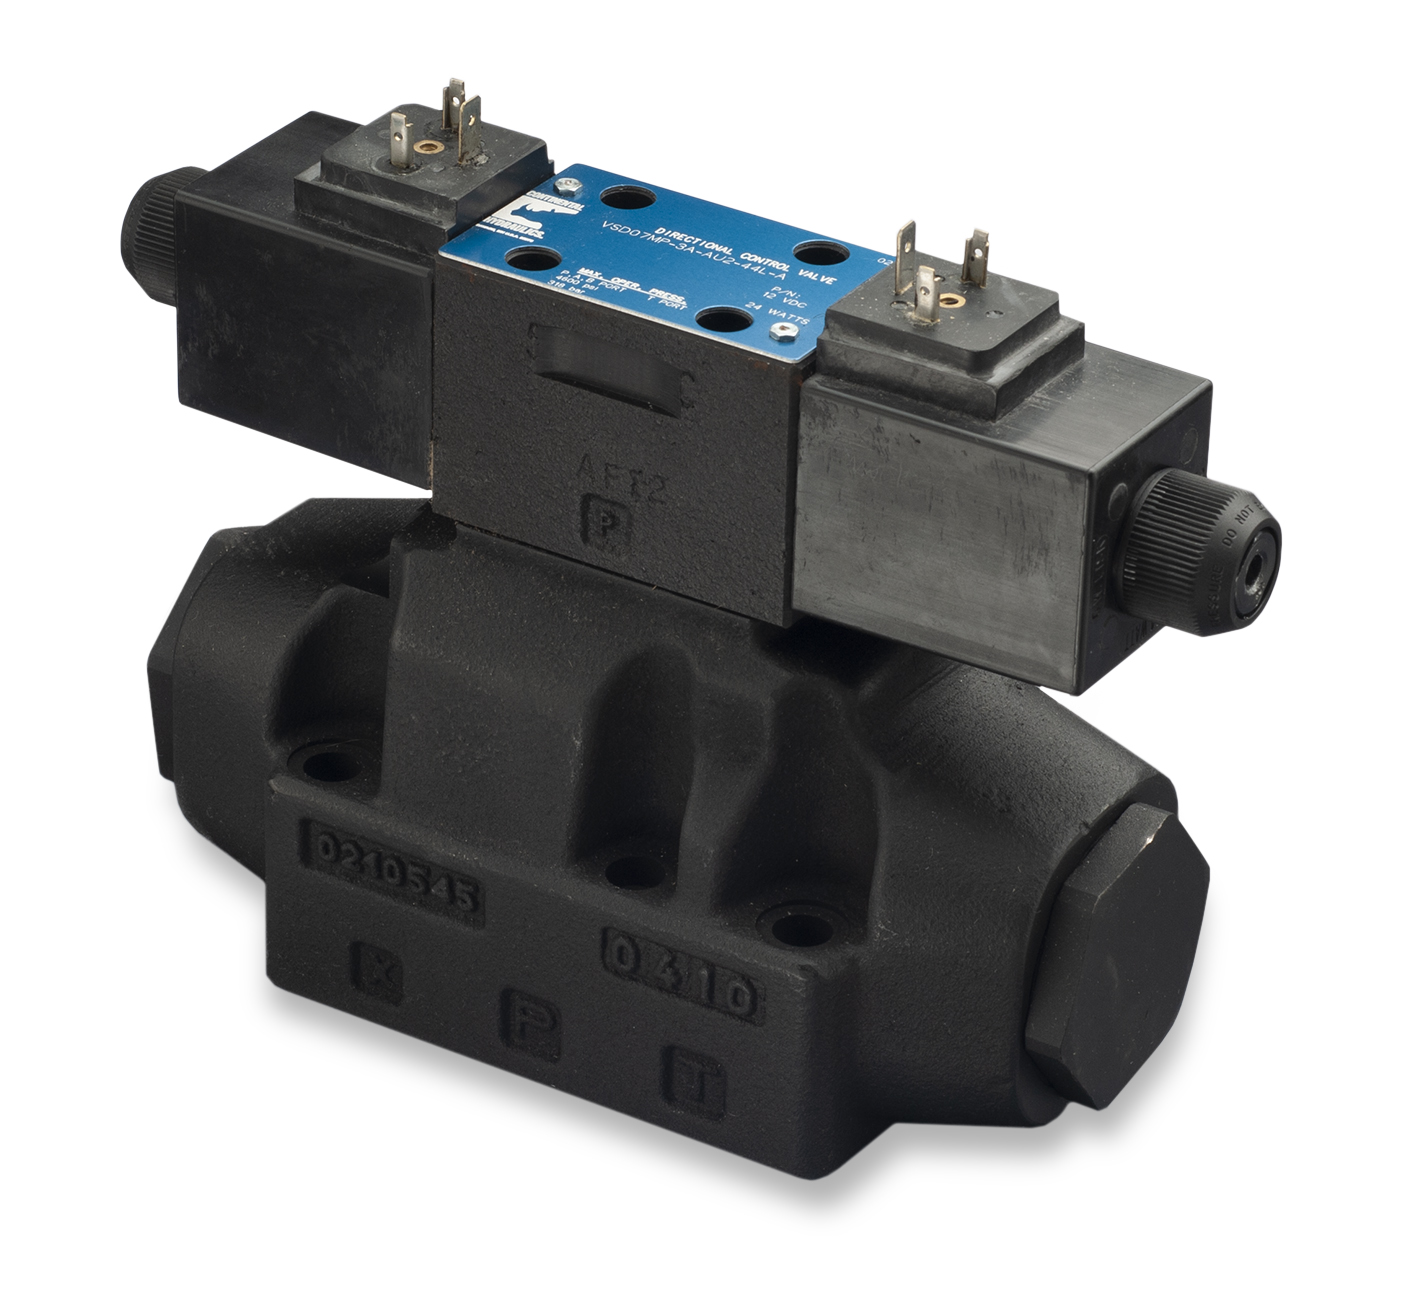 VSD05AM directional control valve product; white background